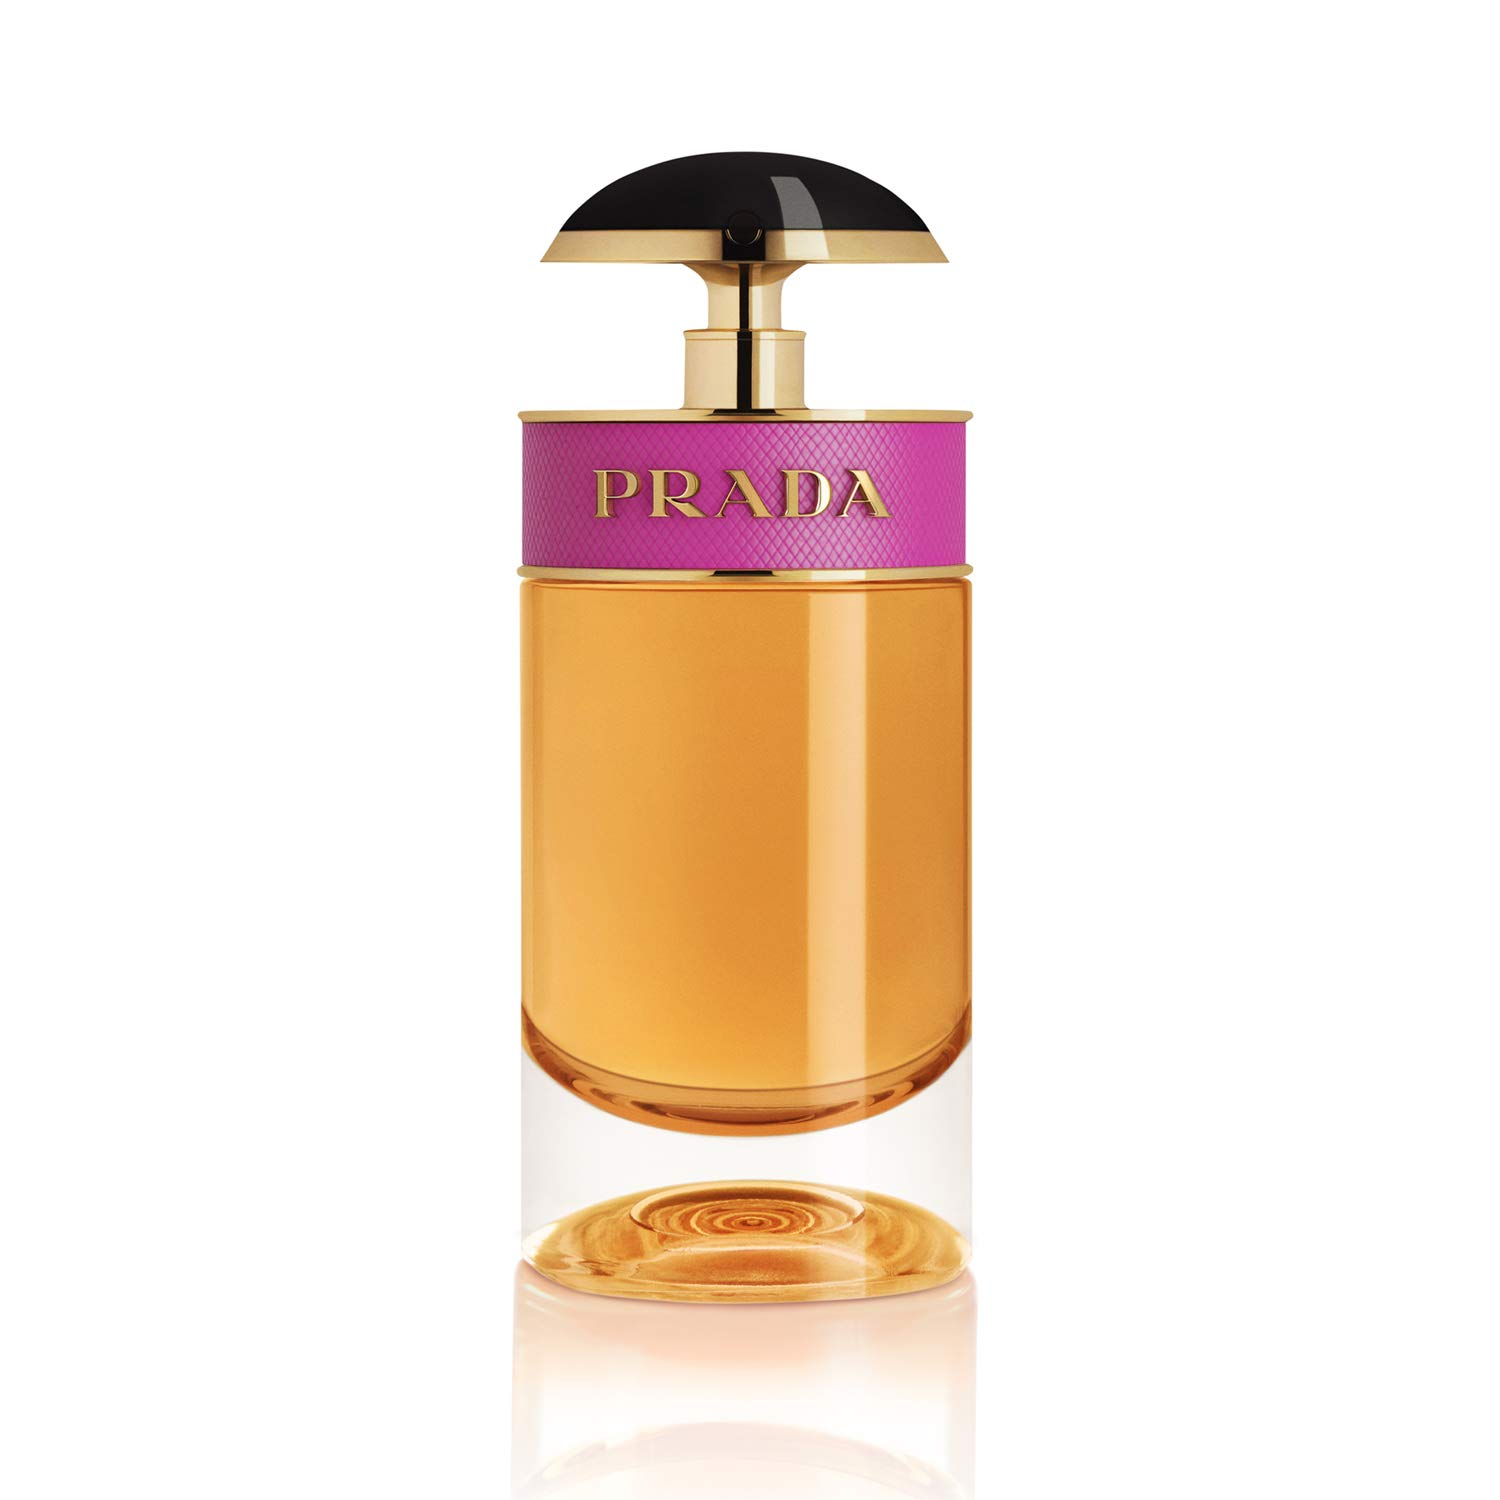 Prada Candy Eau De Parfum Spray for Women, 1.7 Ounce